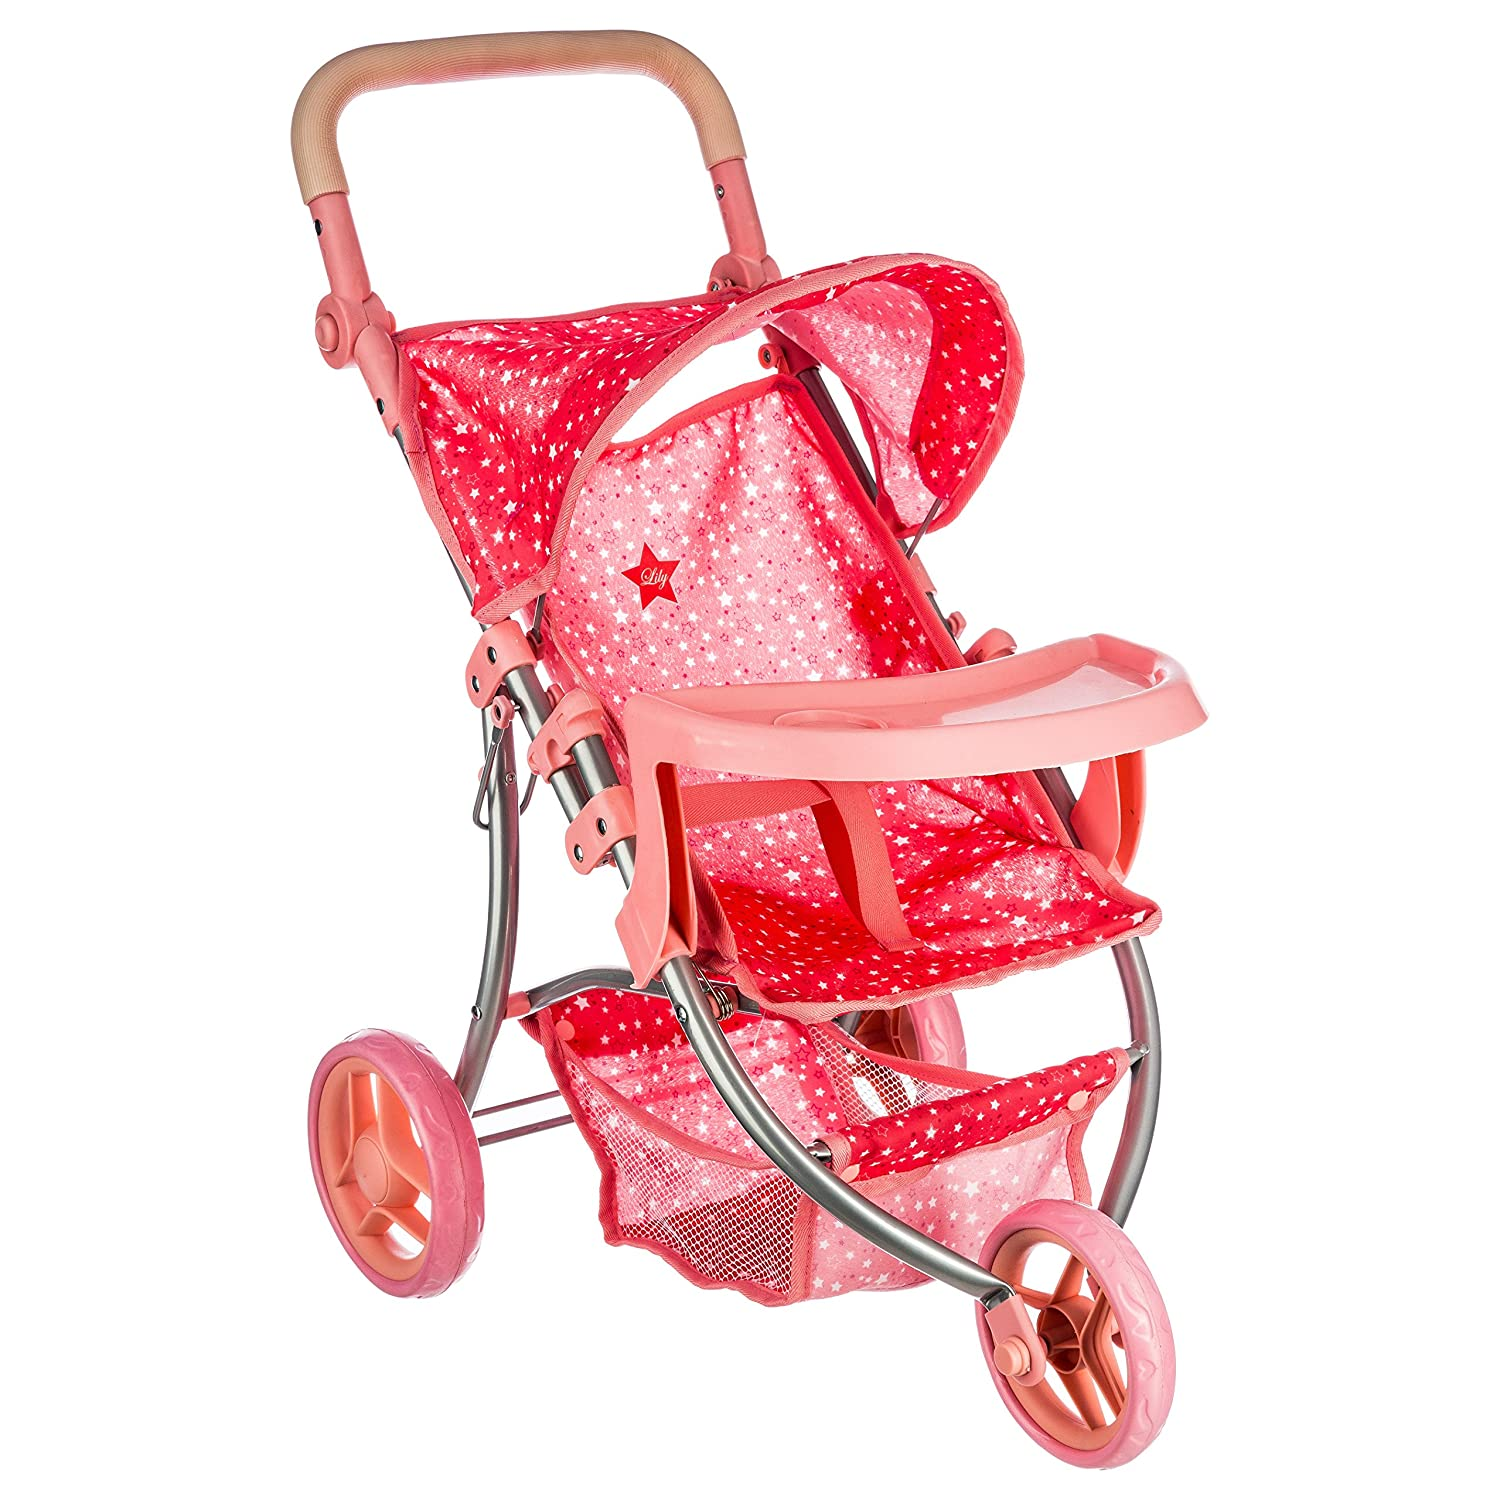 BETOYS/ 123207 Adjustable 3/ Wheeler Pushchair With Star Design/  Random Shades of Pink